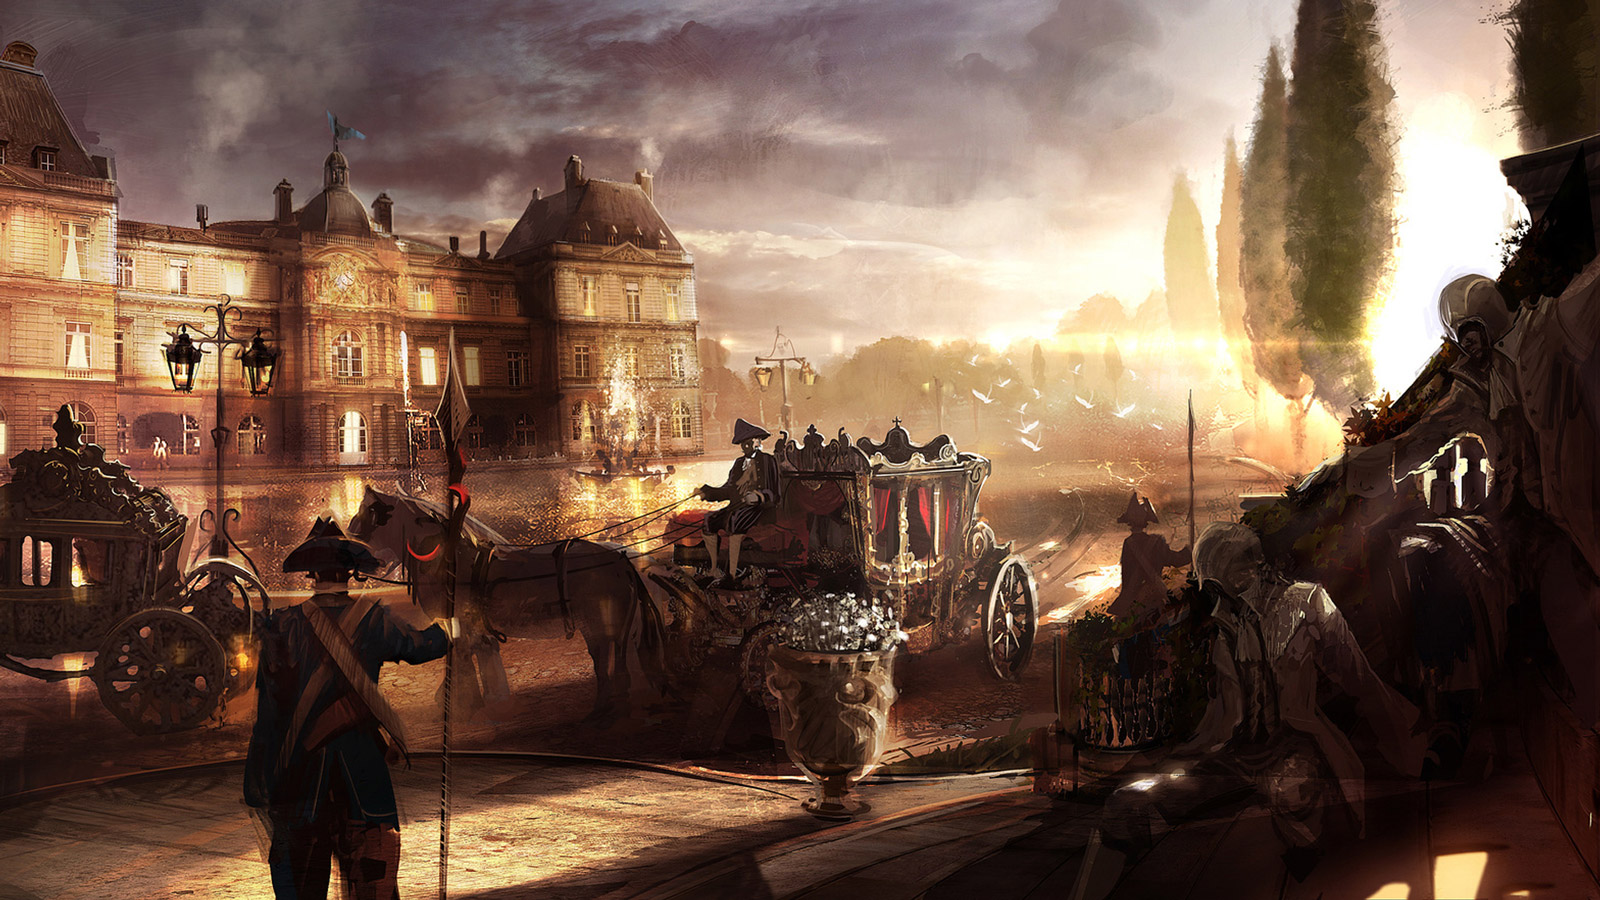 Free Assassin's Creed: Unity Wallpaper in 1600x900